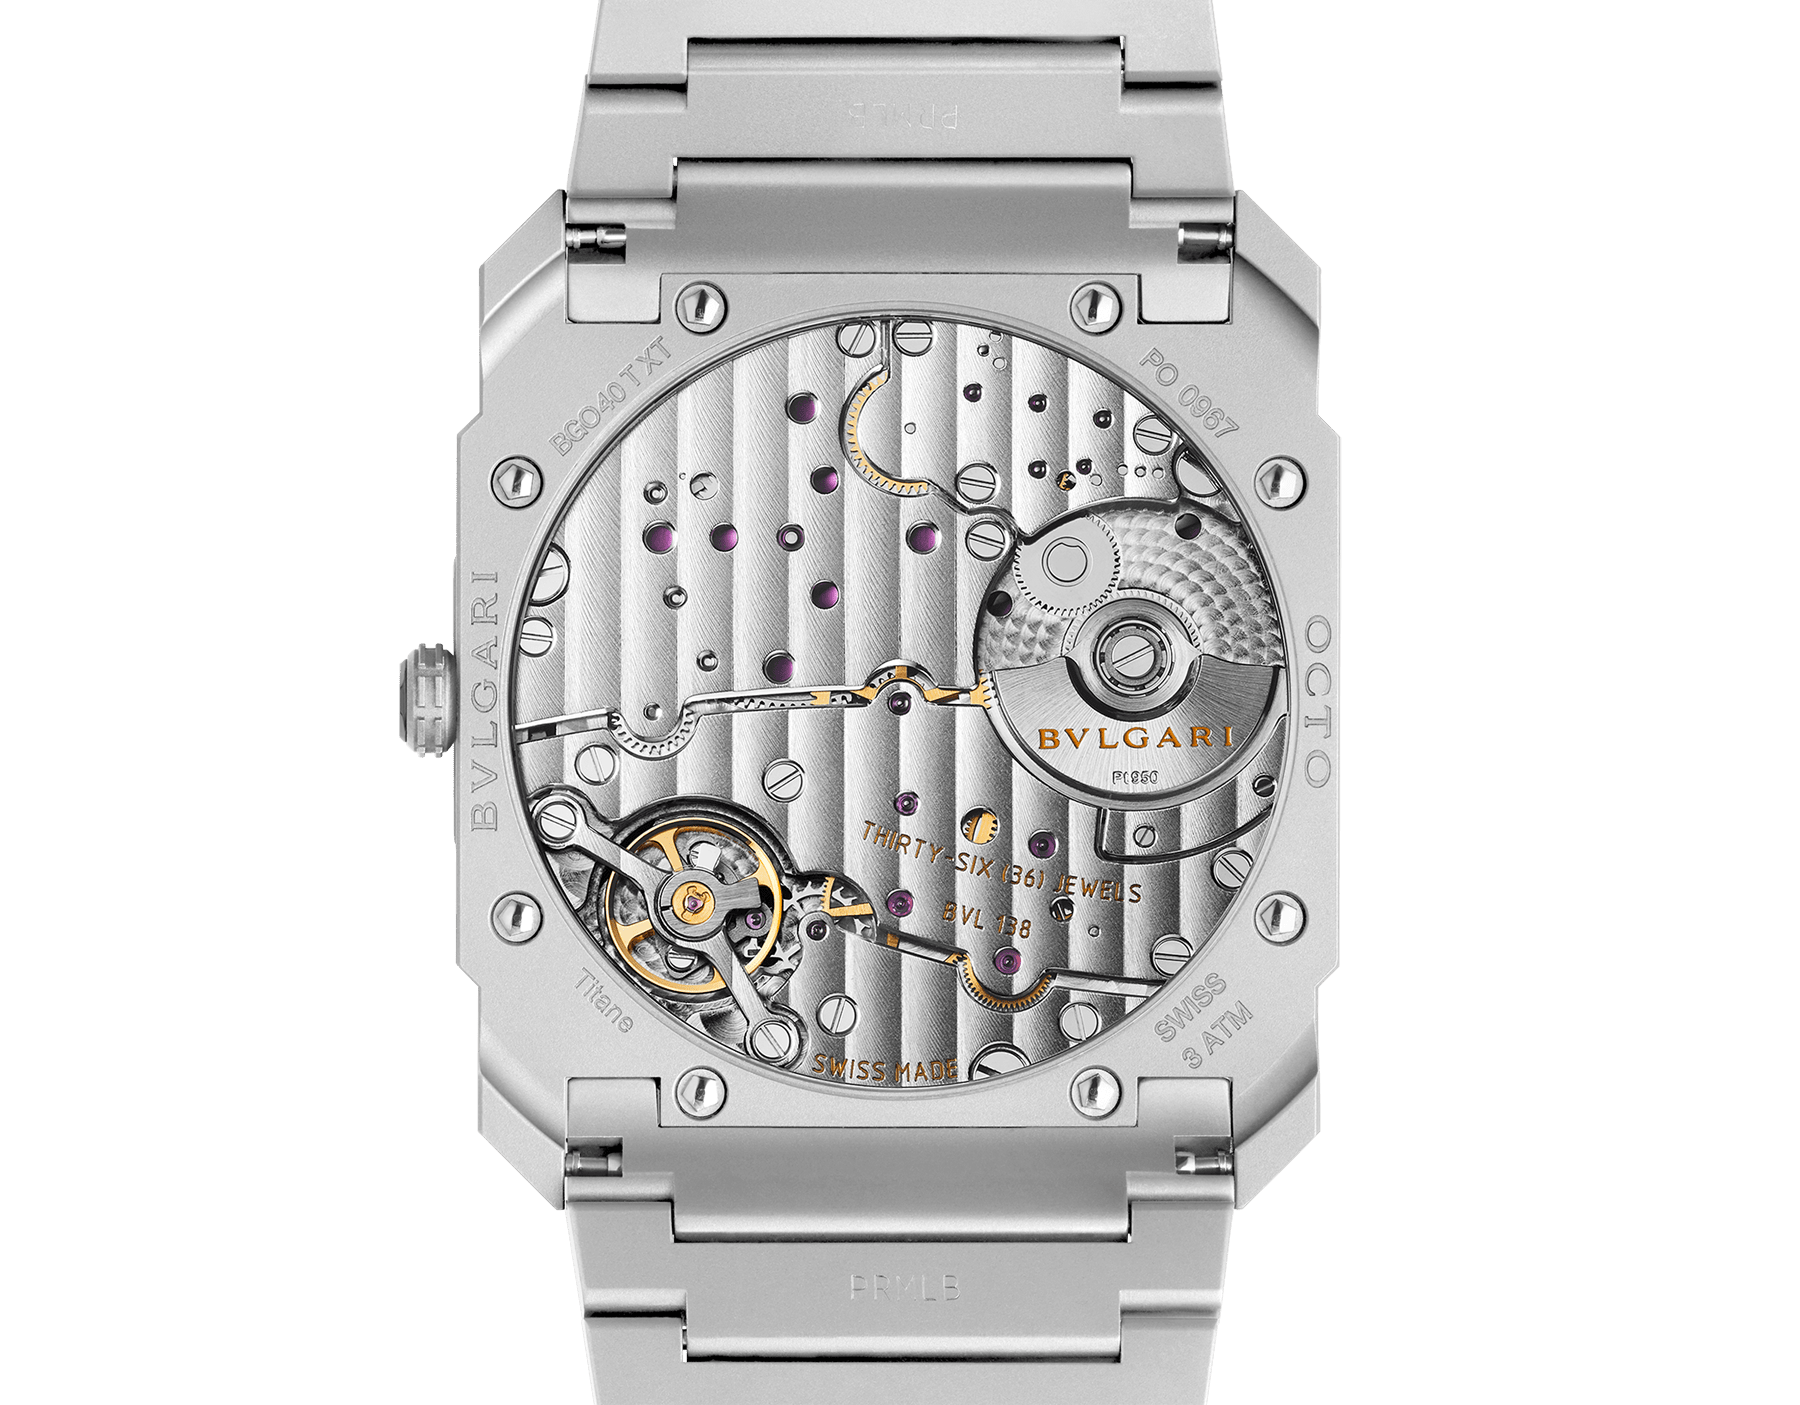 Octo Finissimo Automatic watch in titanium case and bracelet with extra thin mechanical manufacture movement, automatic winding, small seconds and titanium dial. 102713 image 4